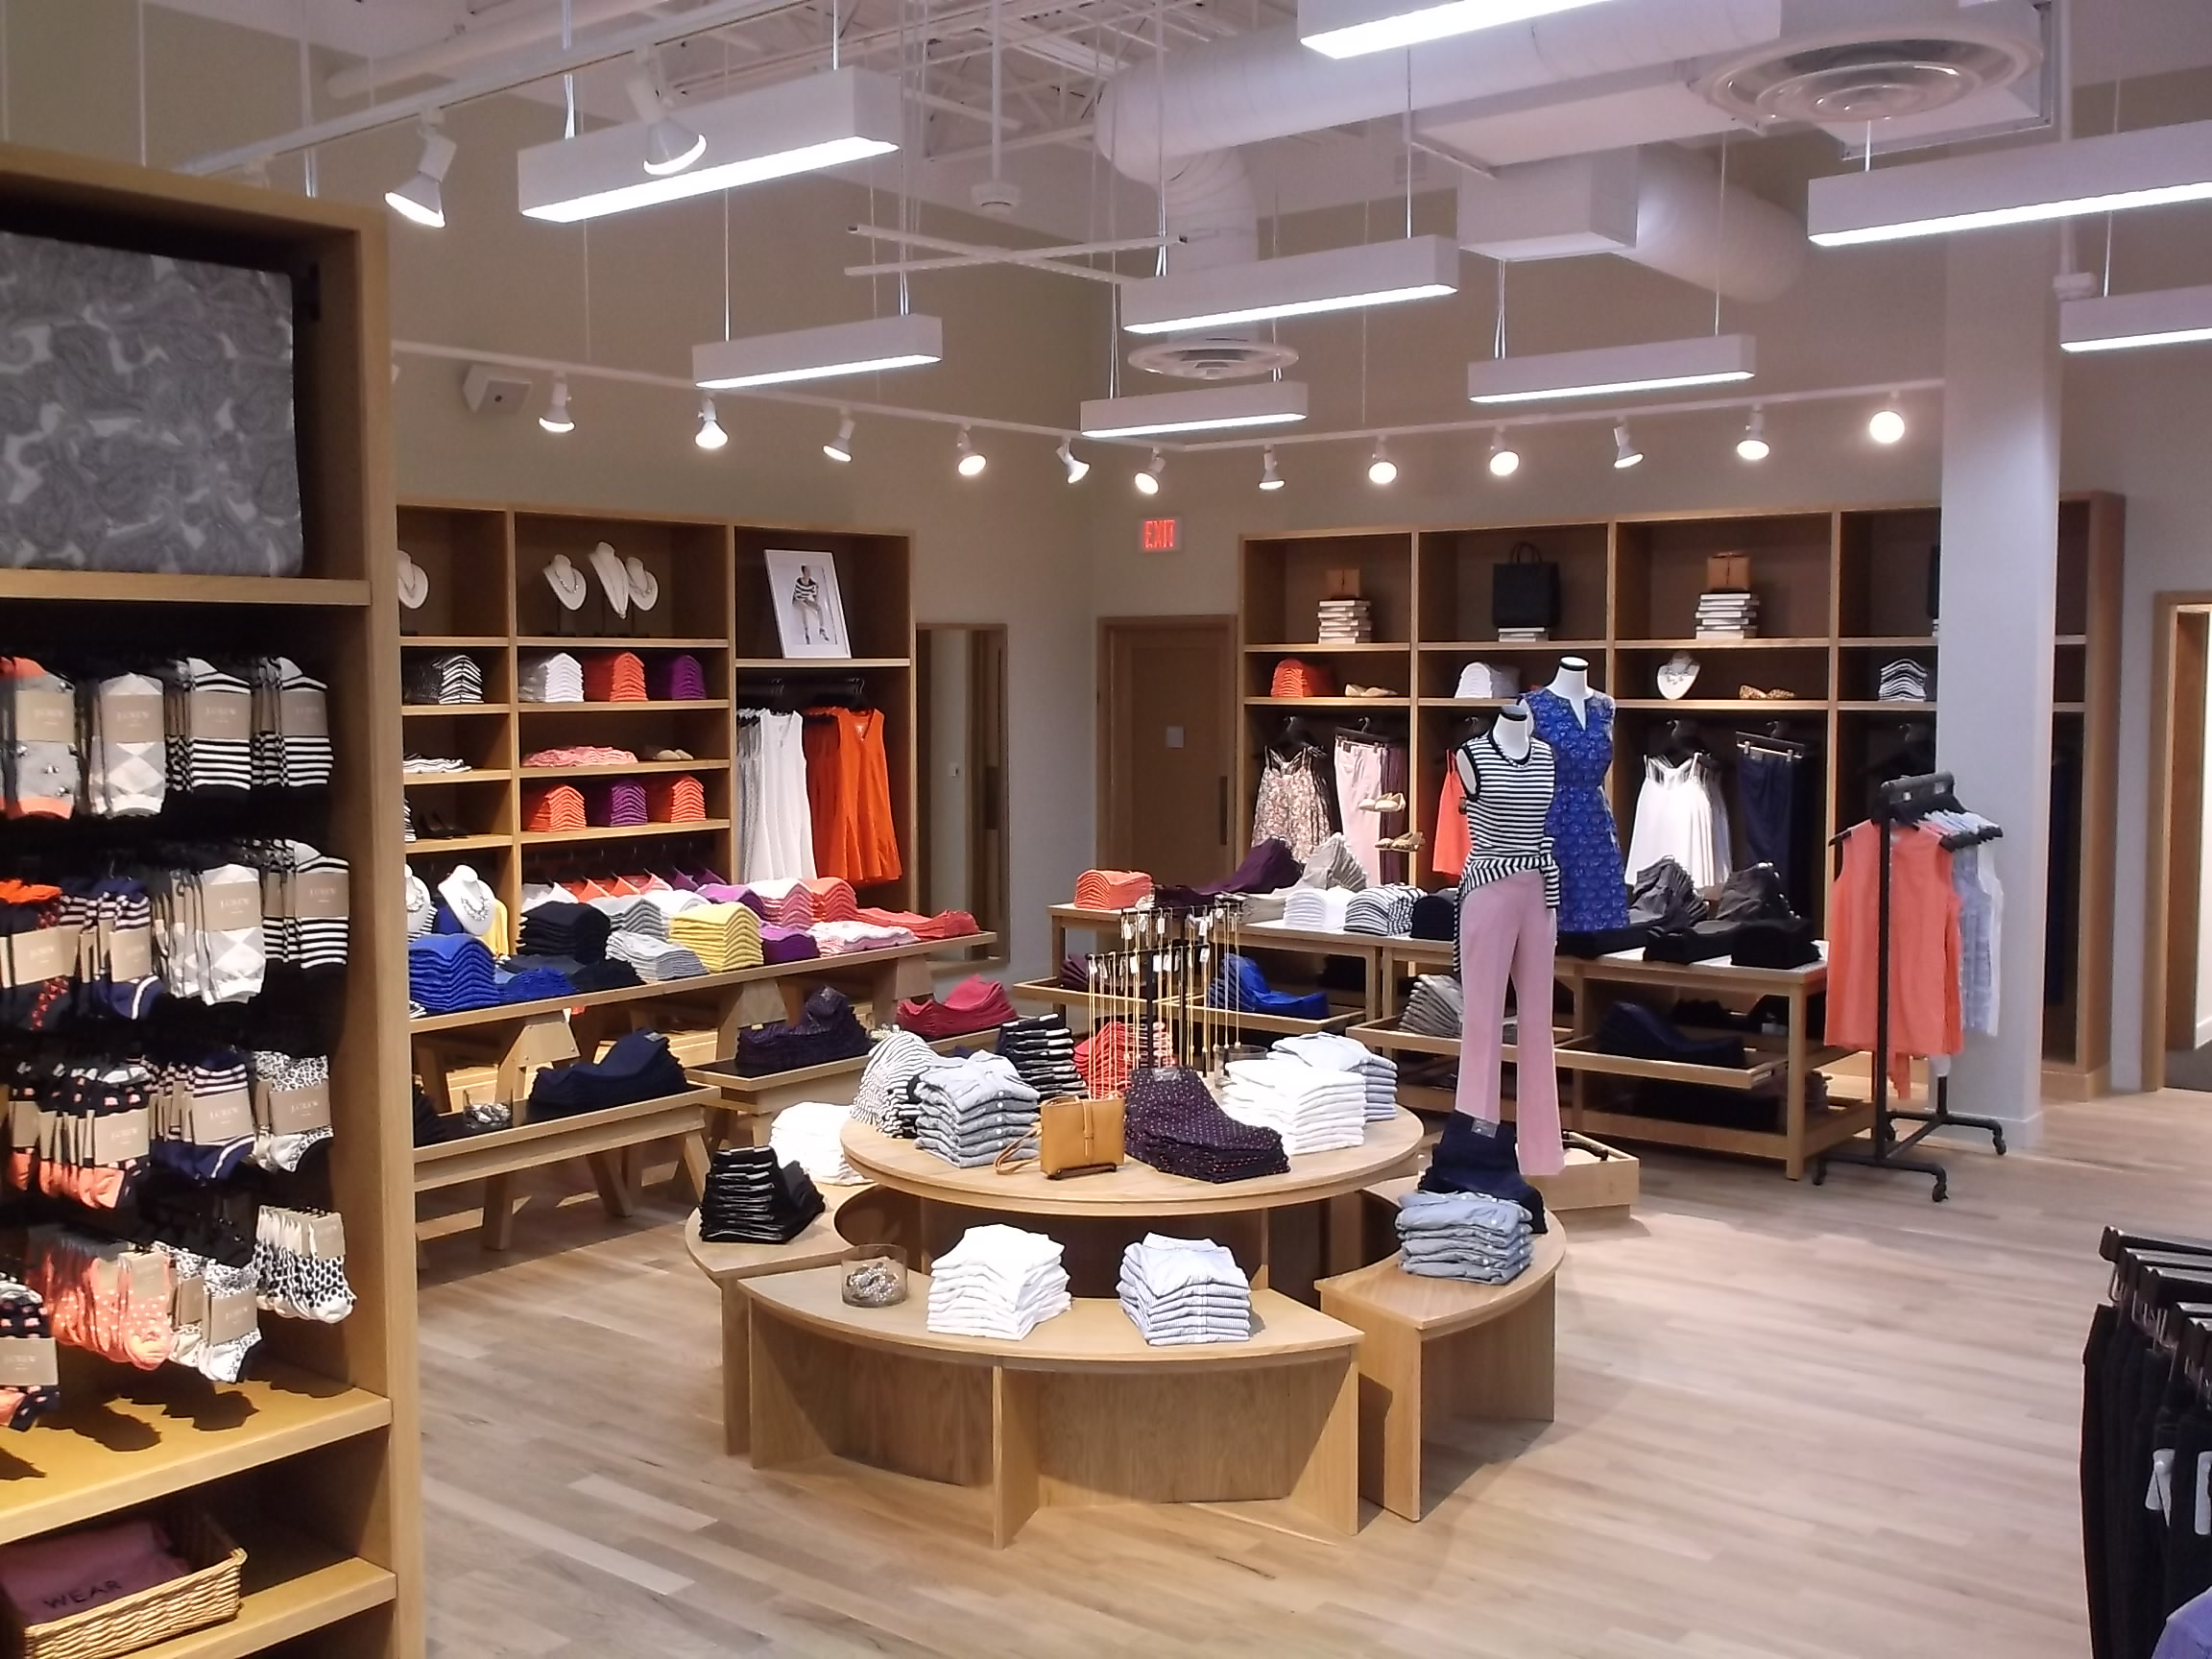 Picture of a J. Crew store constructed by Retail Construction Services, Inc.